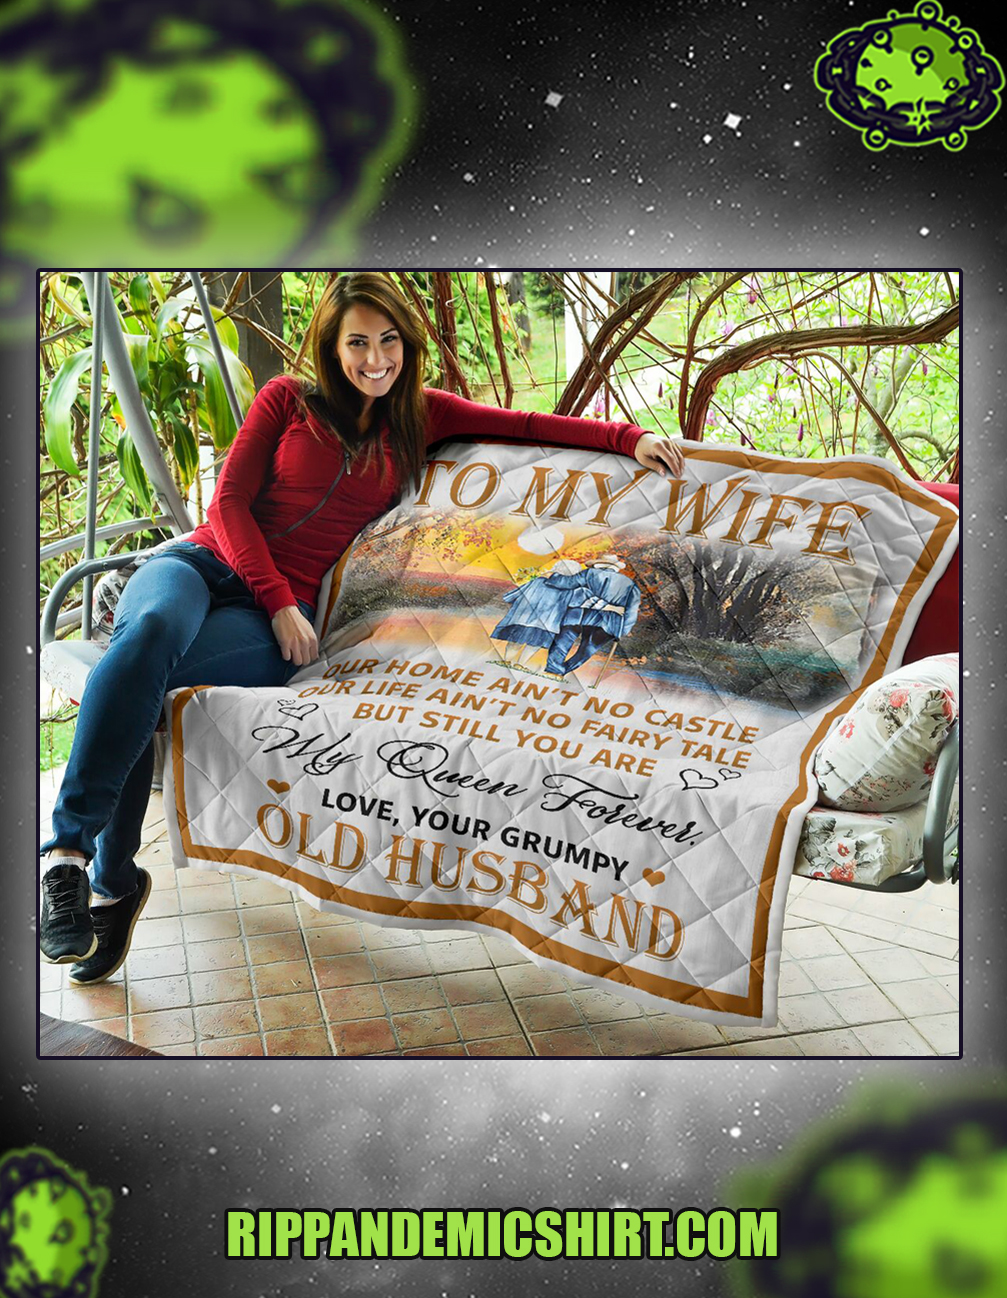 To my wife old husband quilt queen